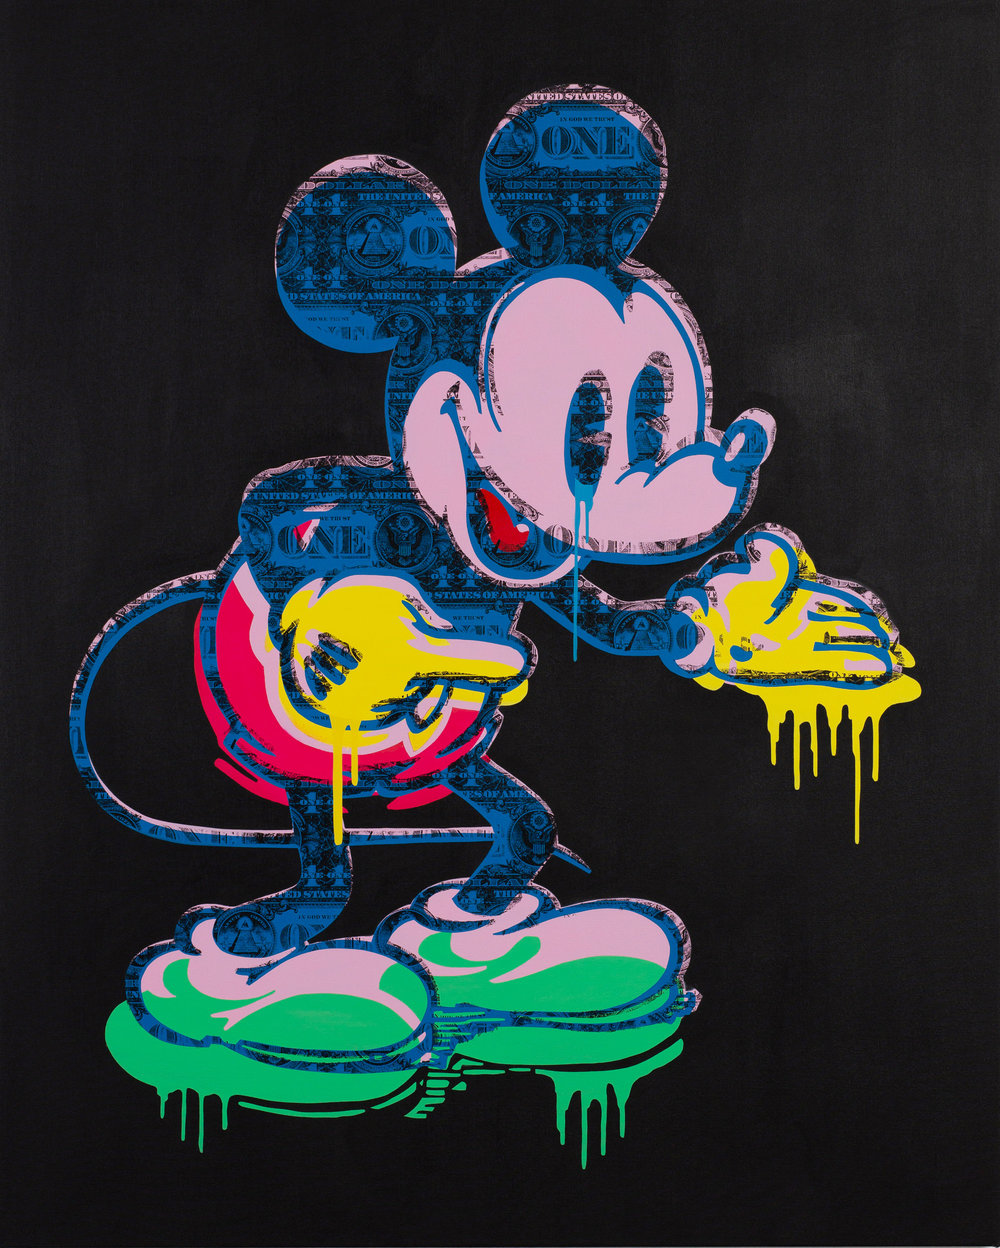 Popaganda-Mouse-Acrylic_Spray_paint_screenprint_emulsion_varnish_on_canvas_150cm-x-120cm-x4.5cm-£3750.jpg